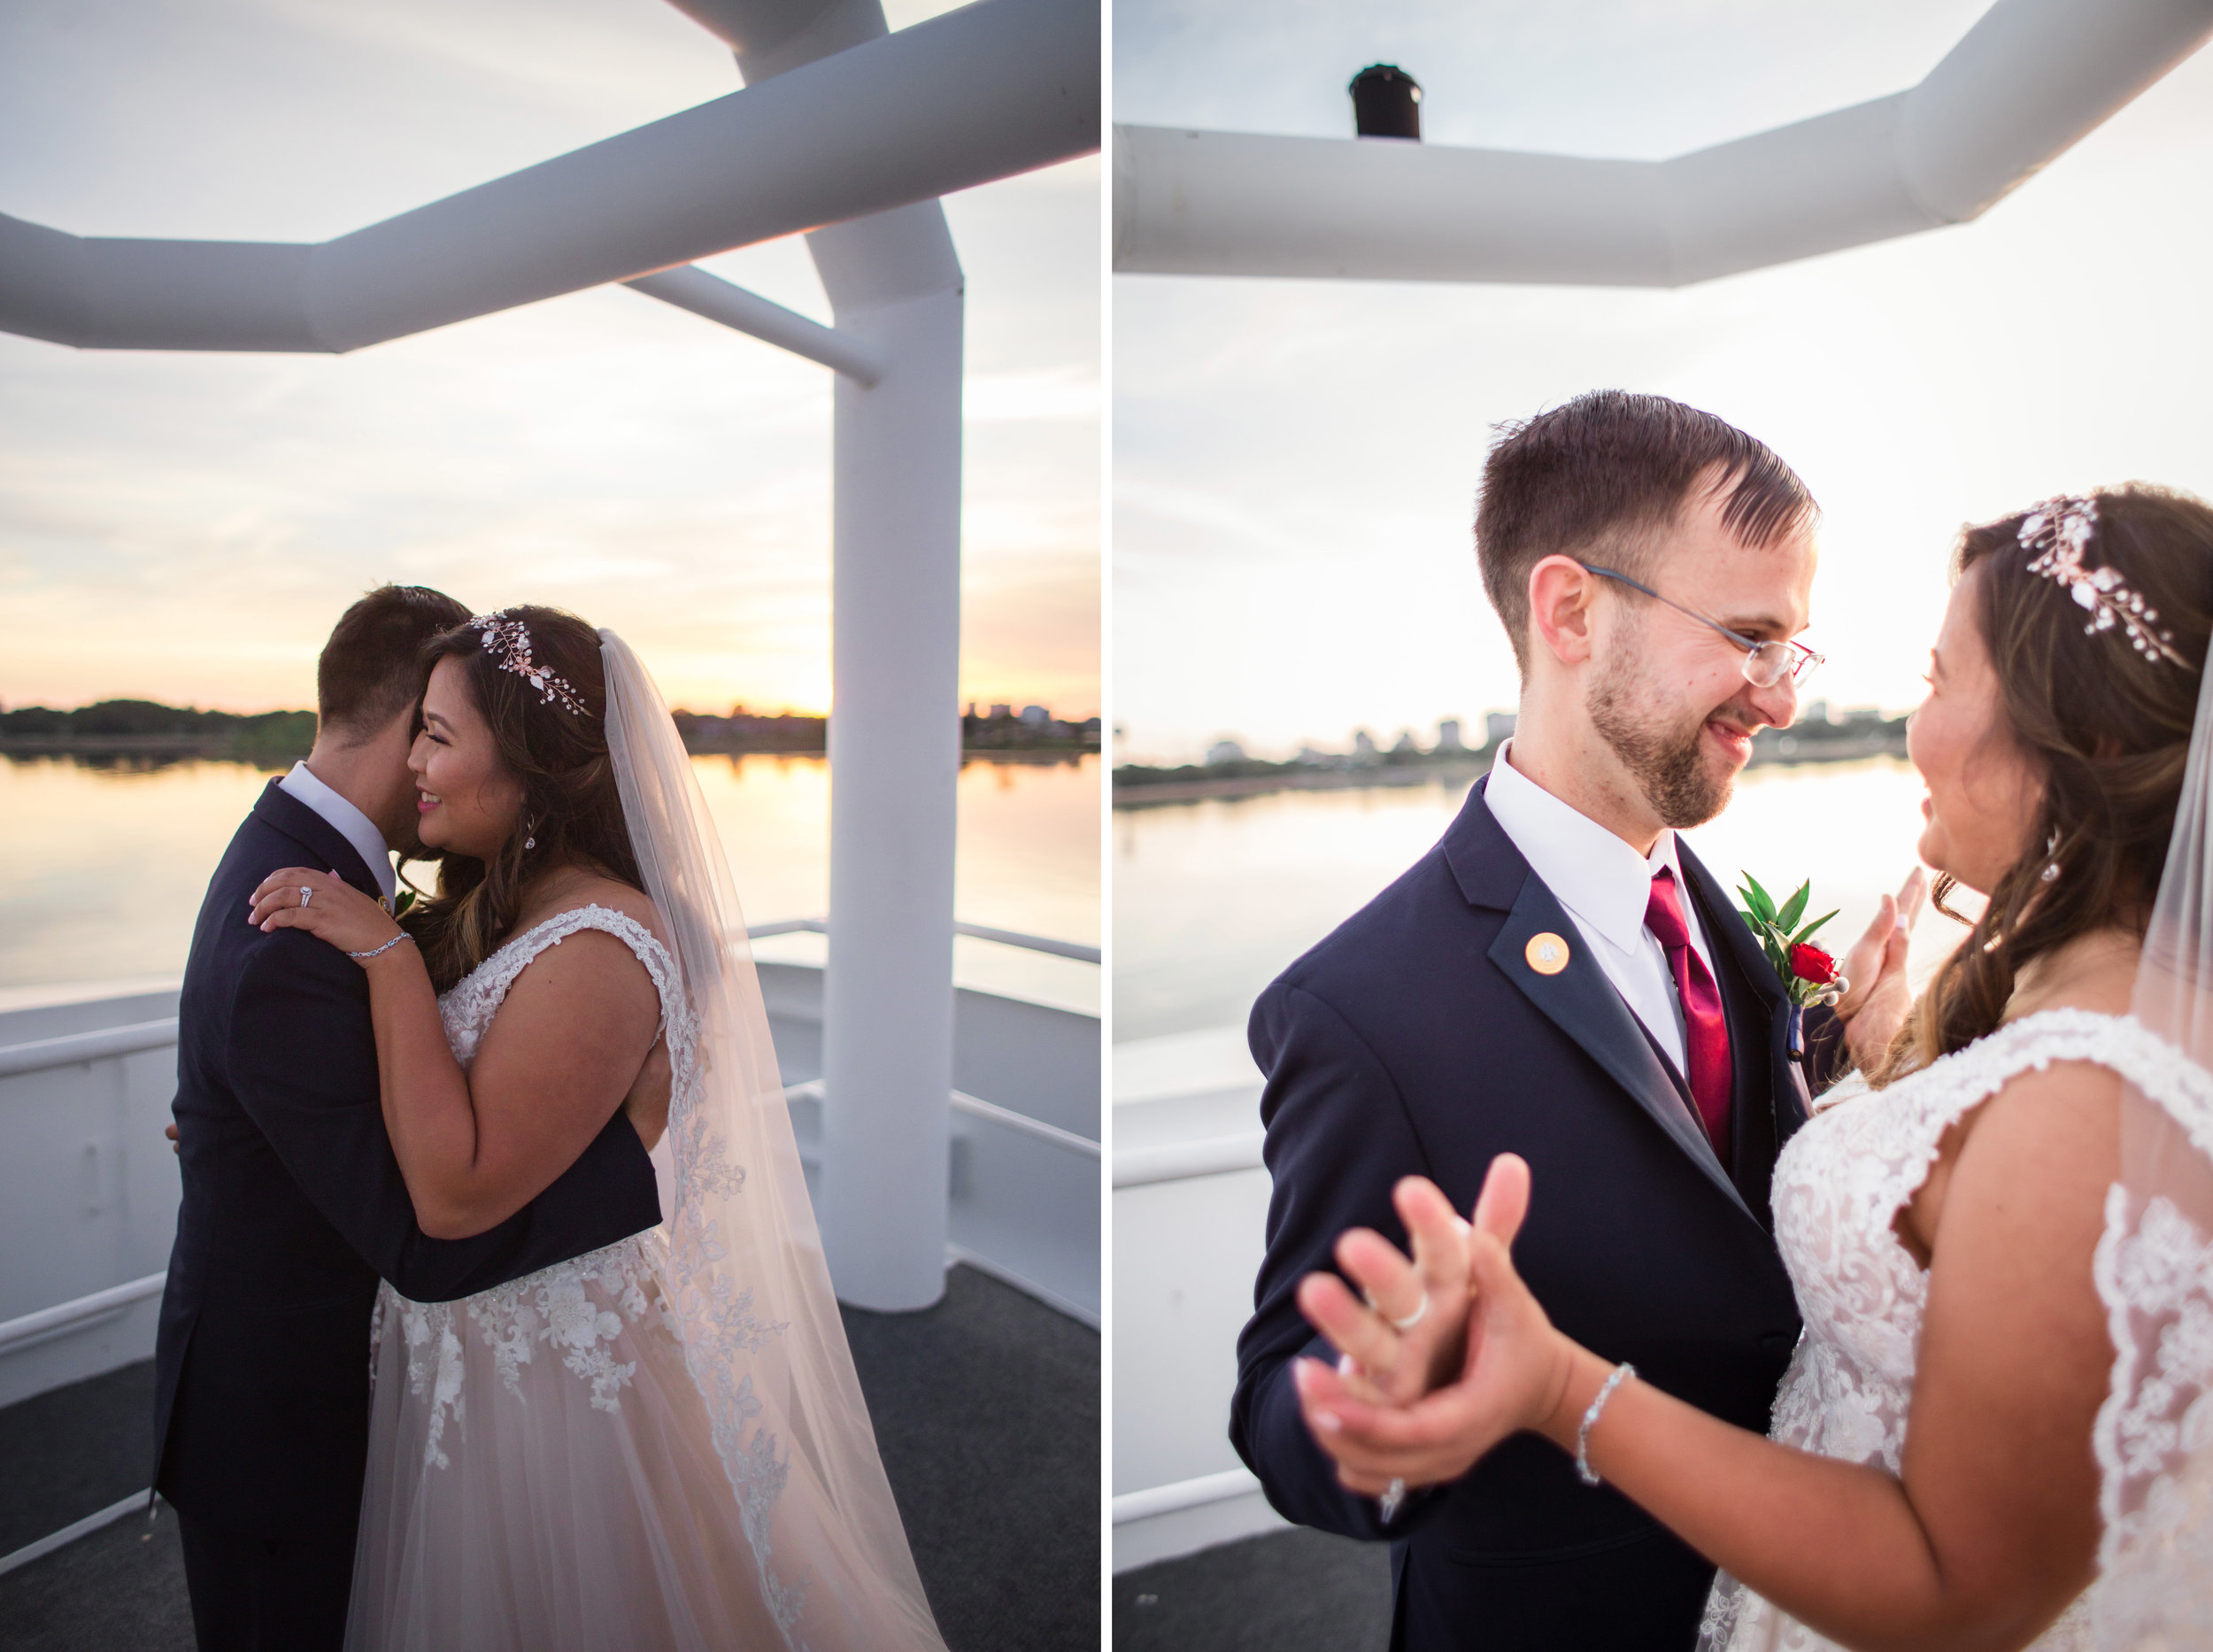 Solaris-Yacht-Destin-Florida-Wedding-Photography-Jerica-Chad-33.jpg